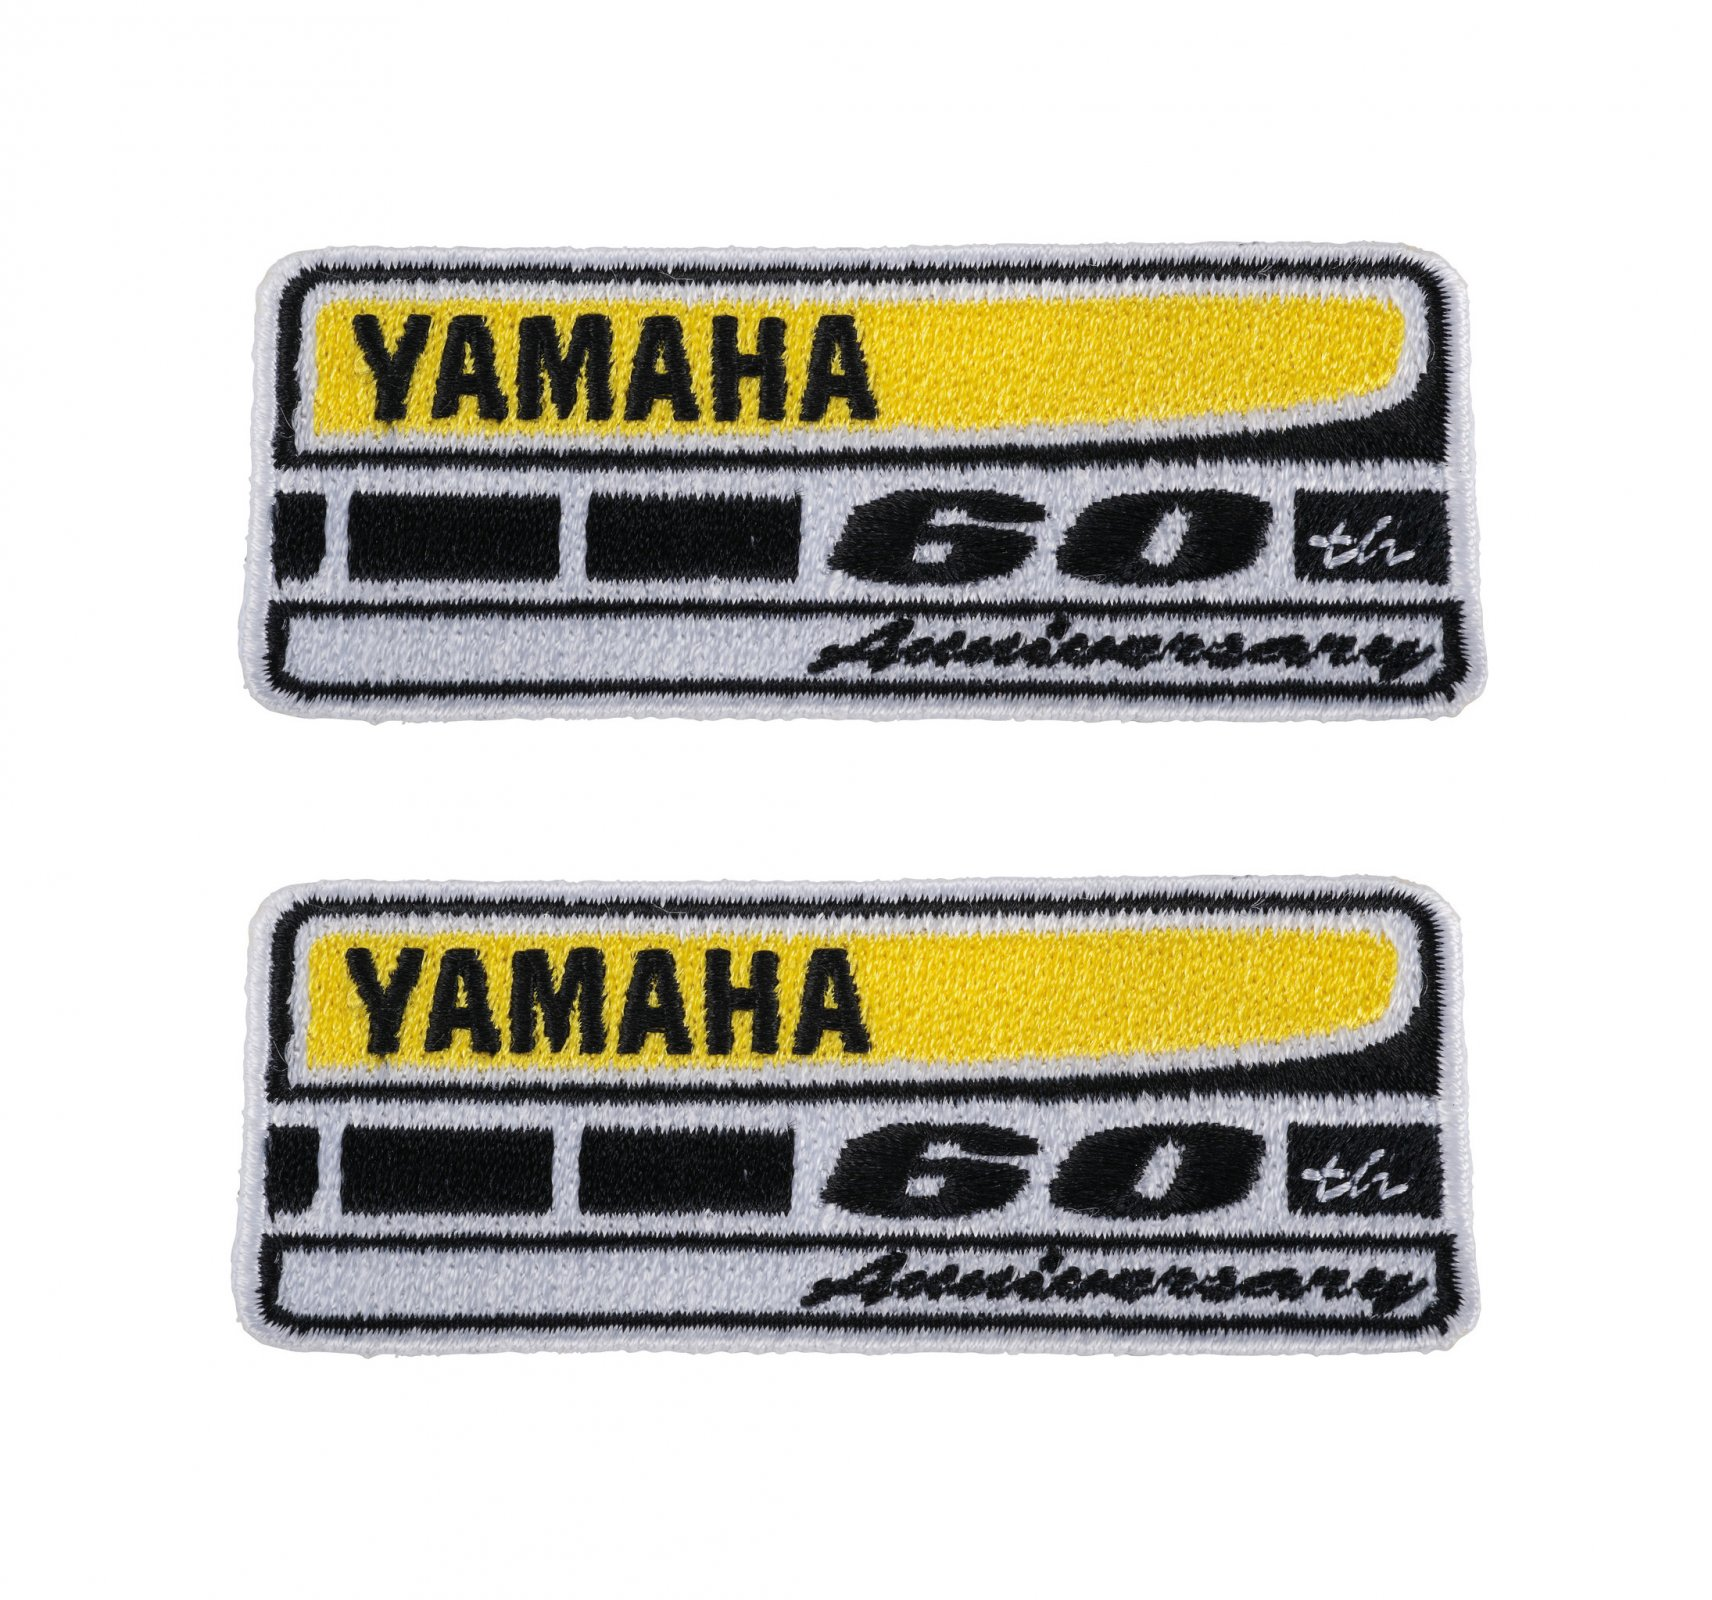 Yamaha 60th Anniversary Patch 6.5x3.5cm (Adhesive) 2 pieces 100% Cotton 80102